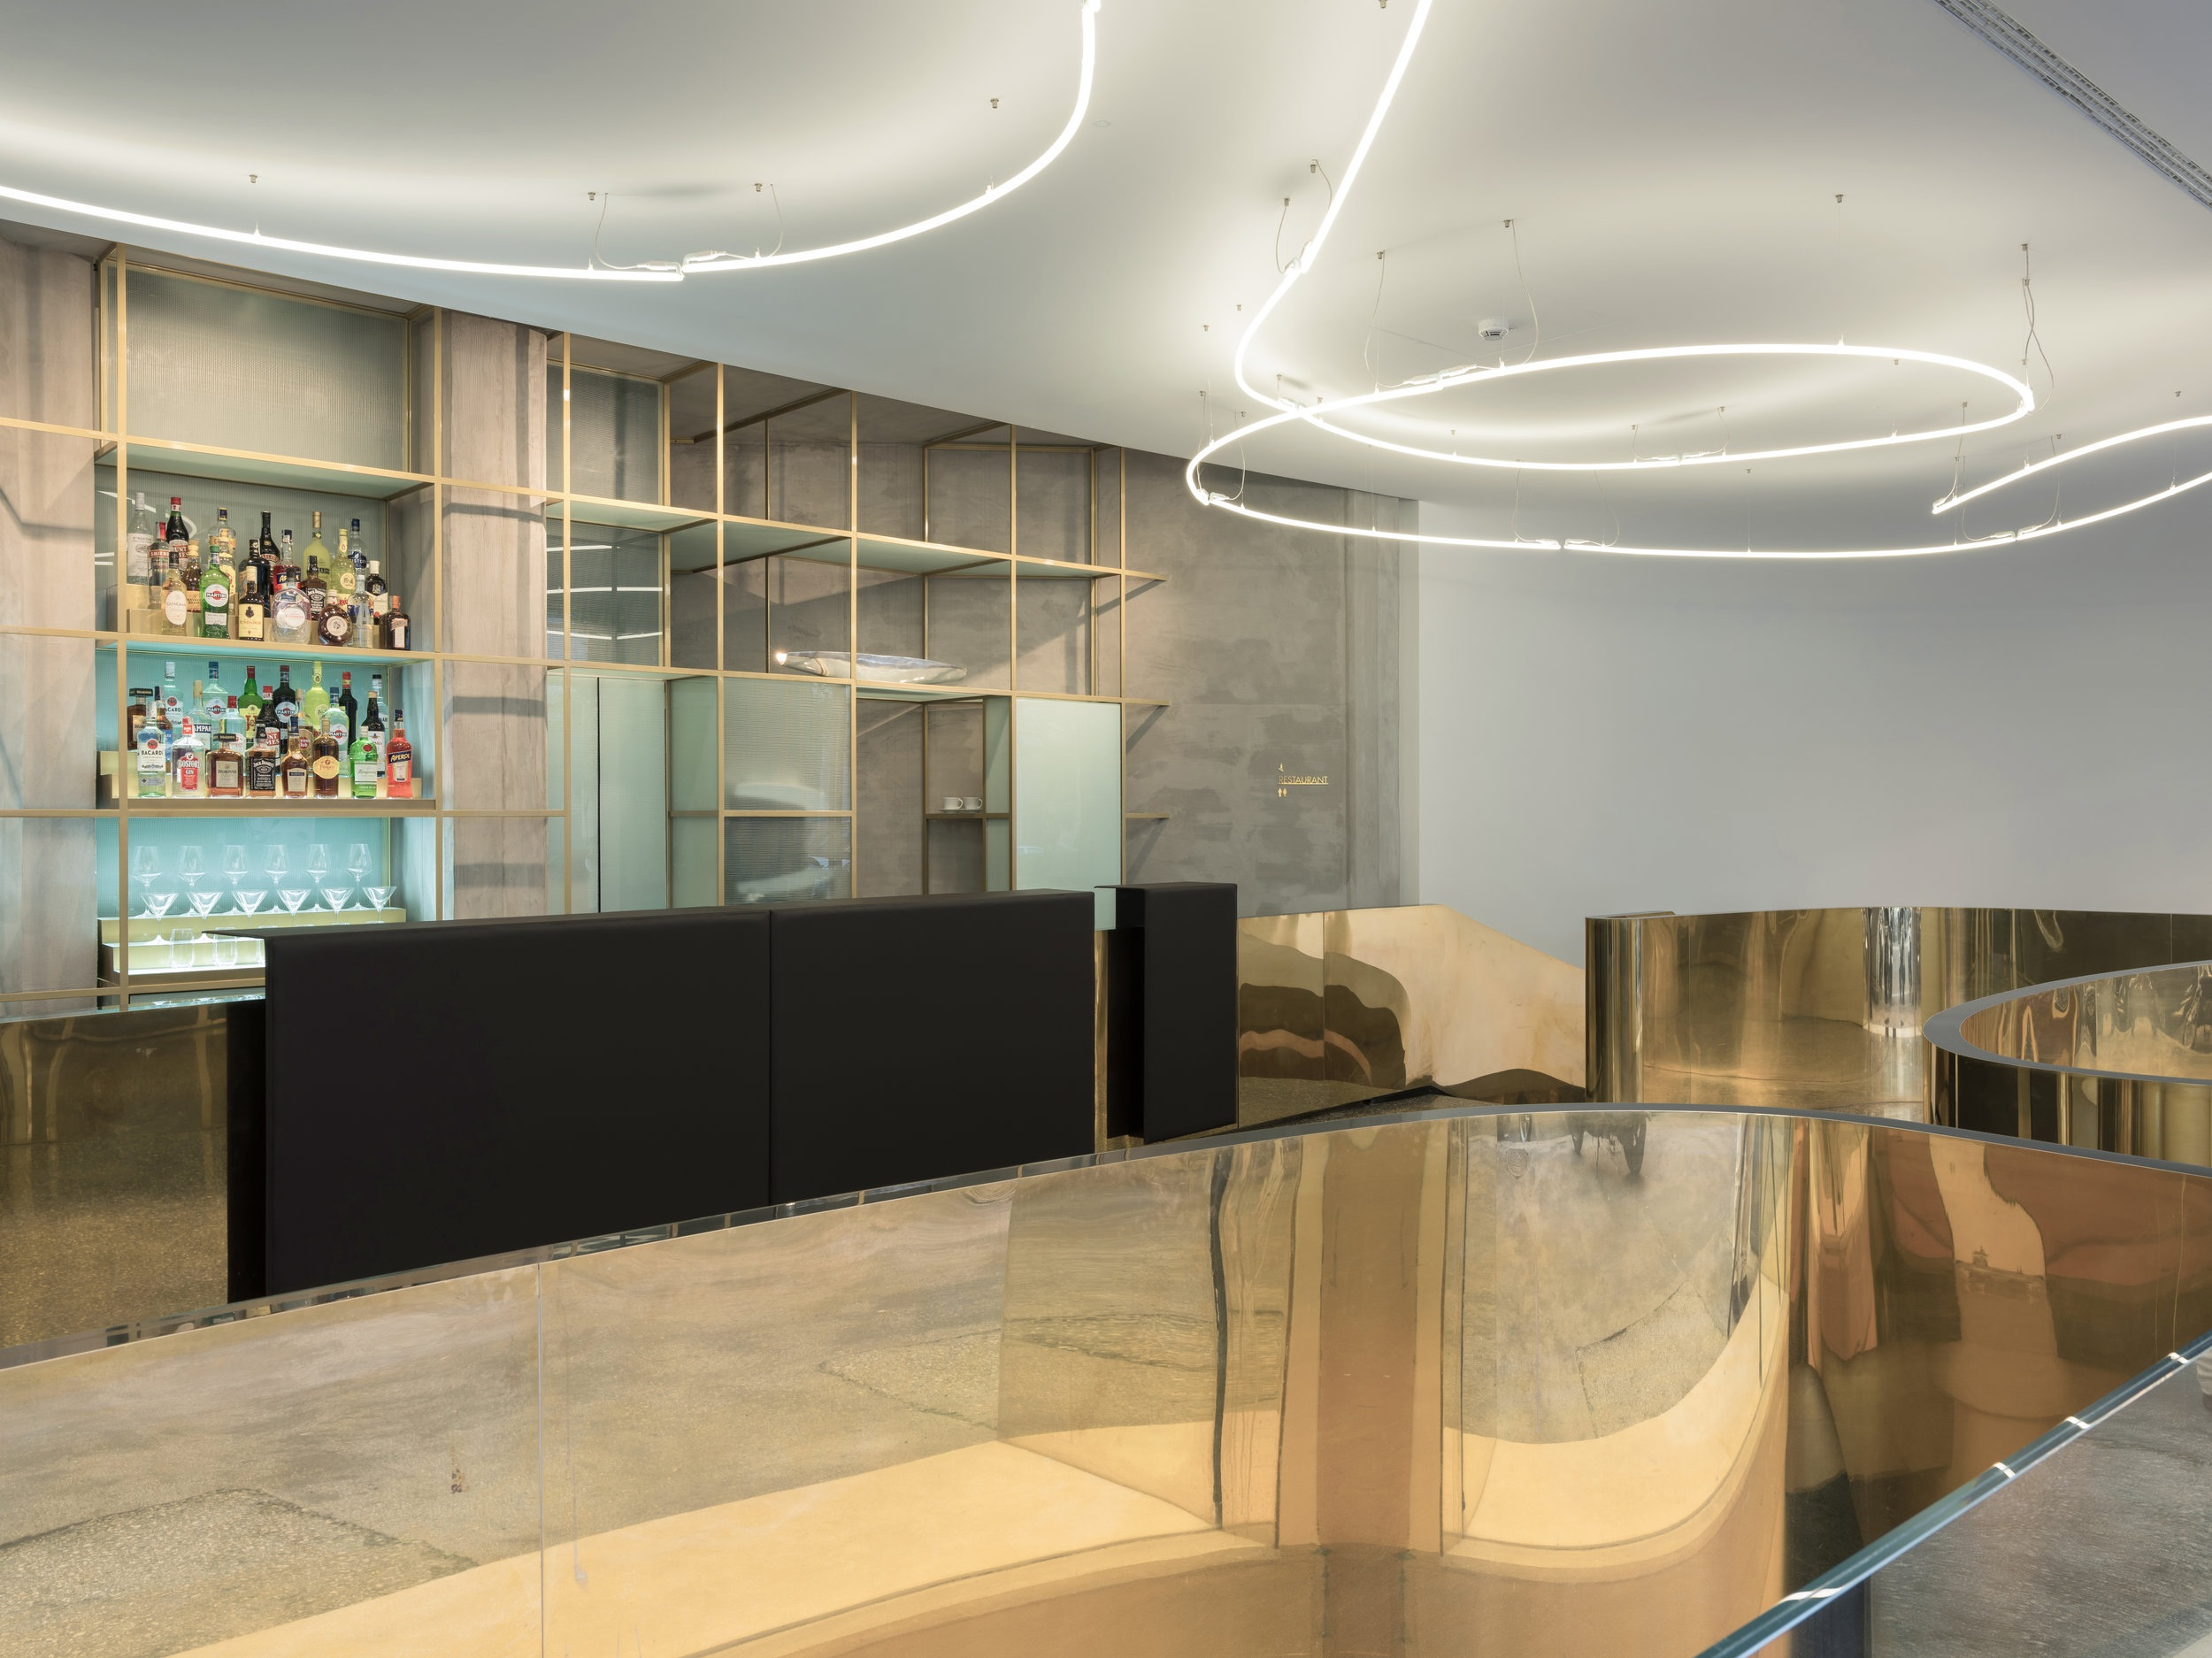 Hotel Royal Bissolati - reception and back counter of the bar -